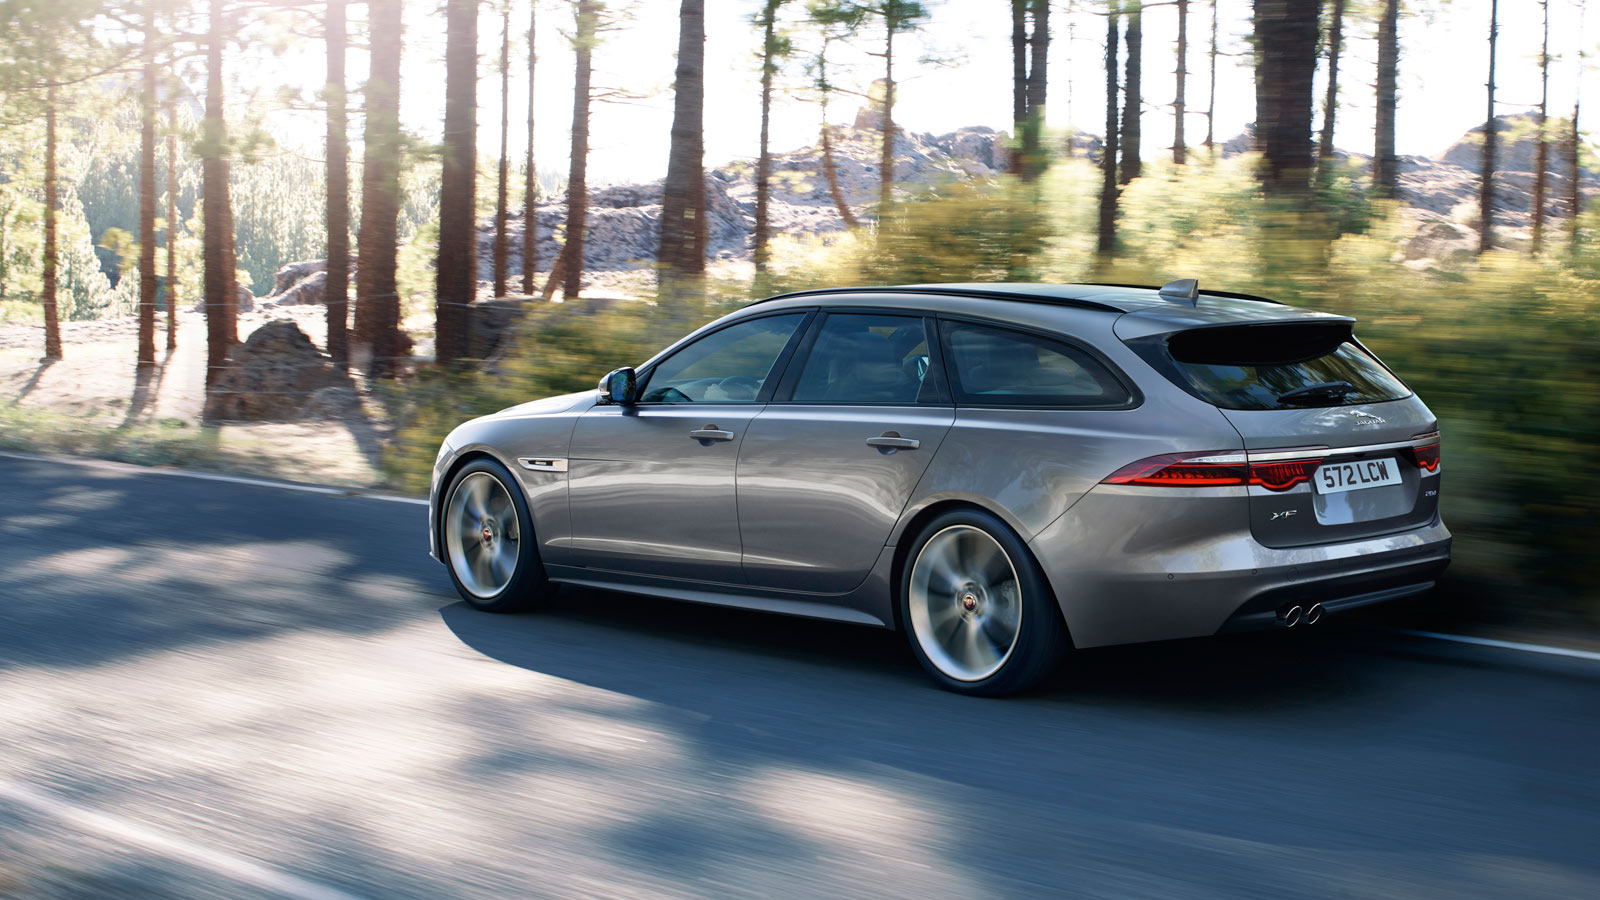 Jaguar XF 2.0d (180) Chequered Flag SPECIAL EDITIONS image 5